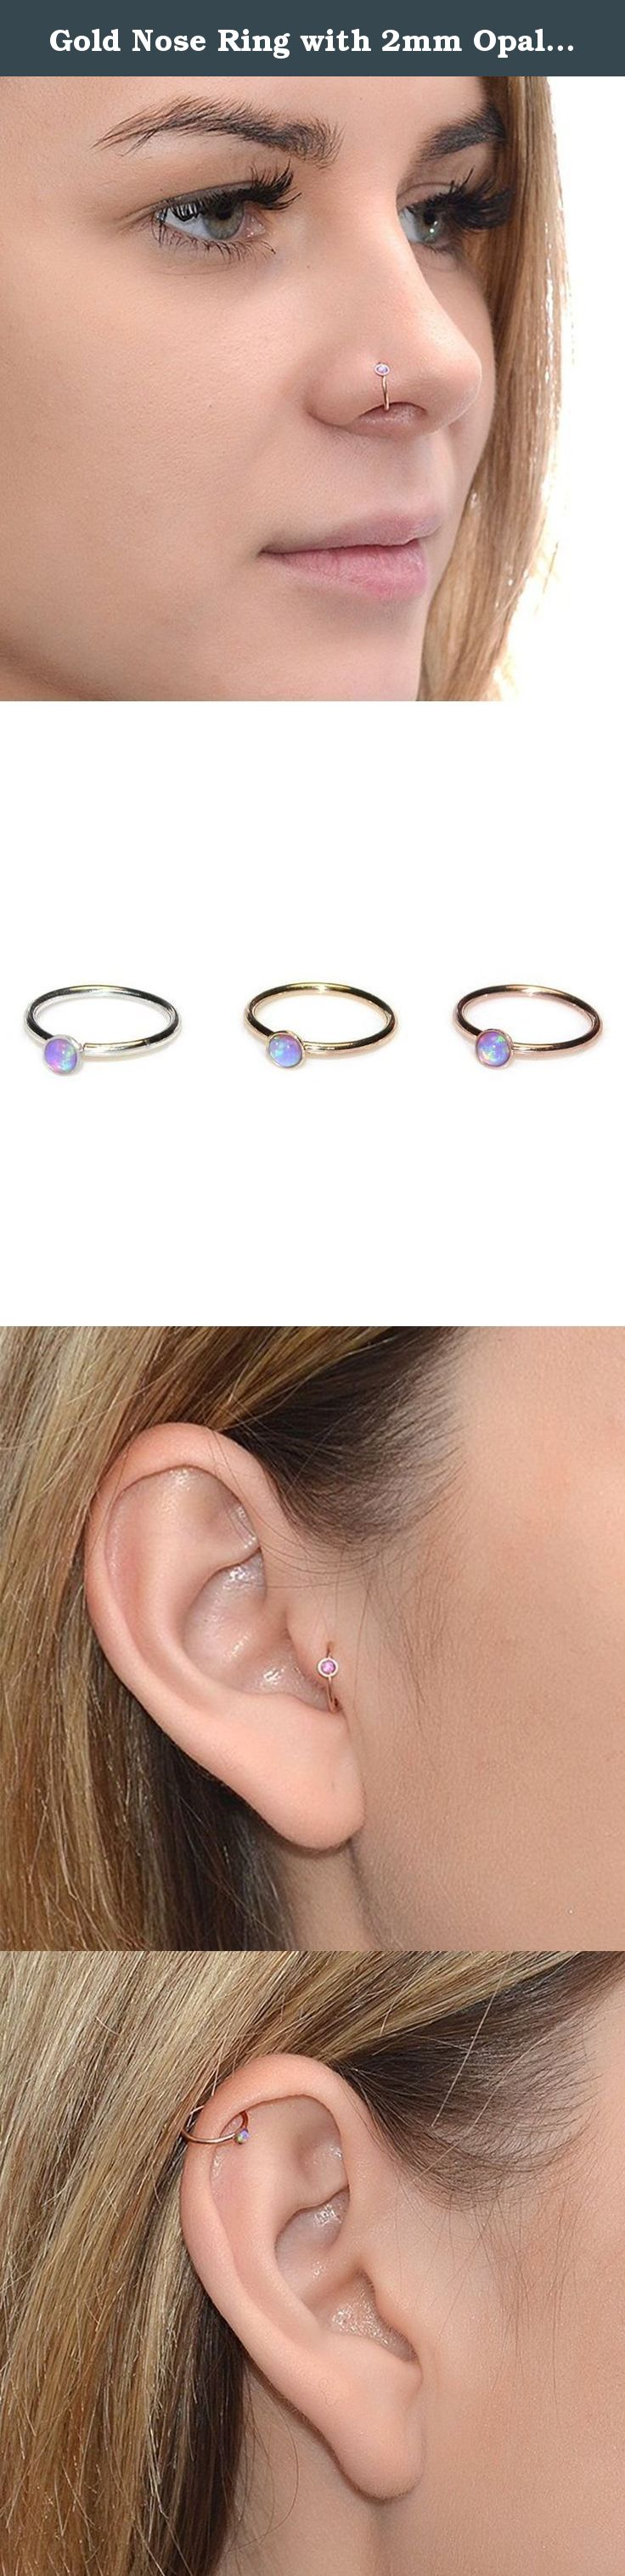 Nose piercing without jewelry  Gold Nose Ring with mm Opal g  Daith Earring Rook Earring